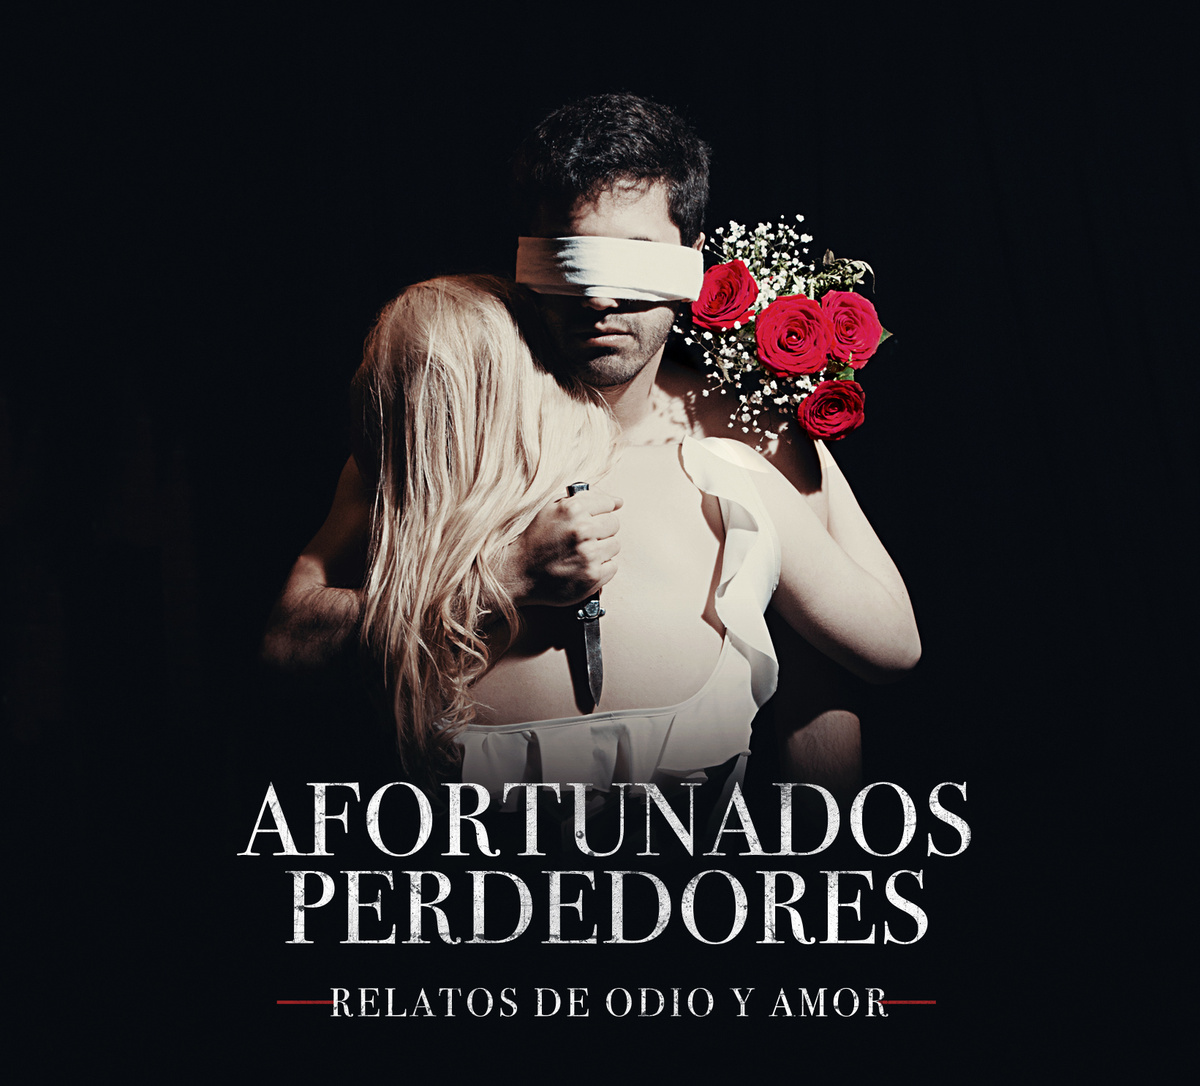 Relatos de odio y amor